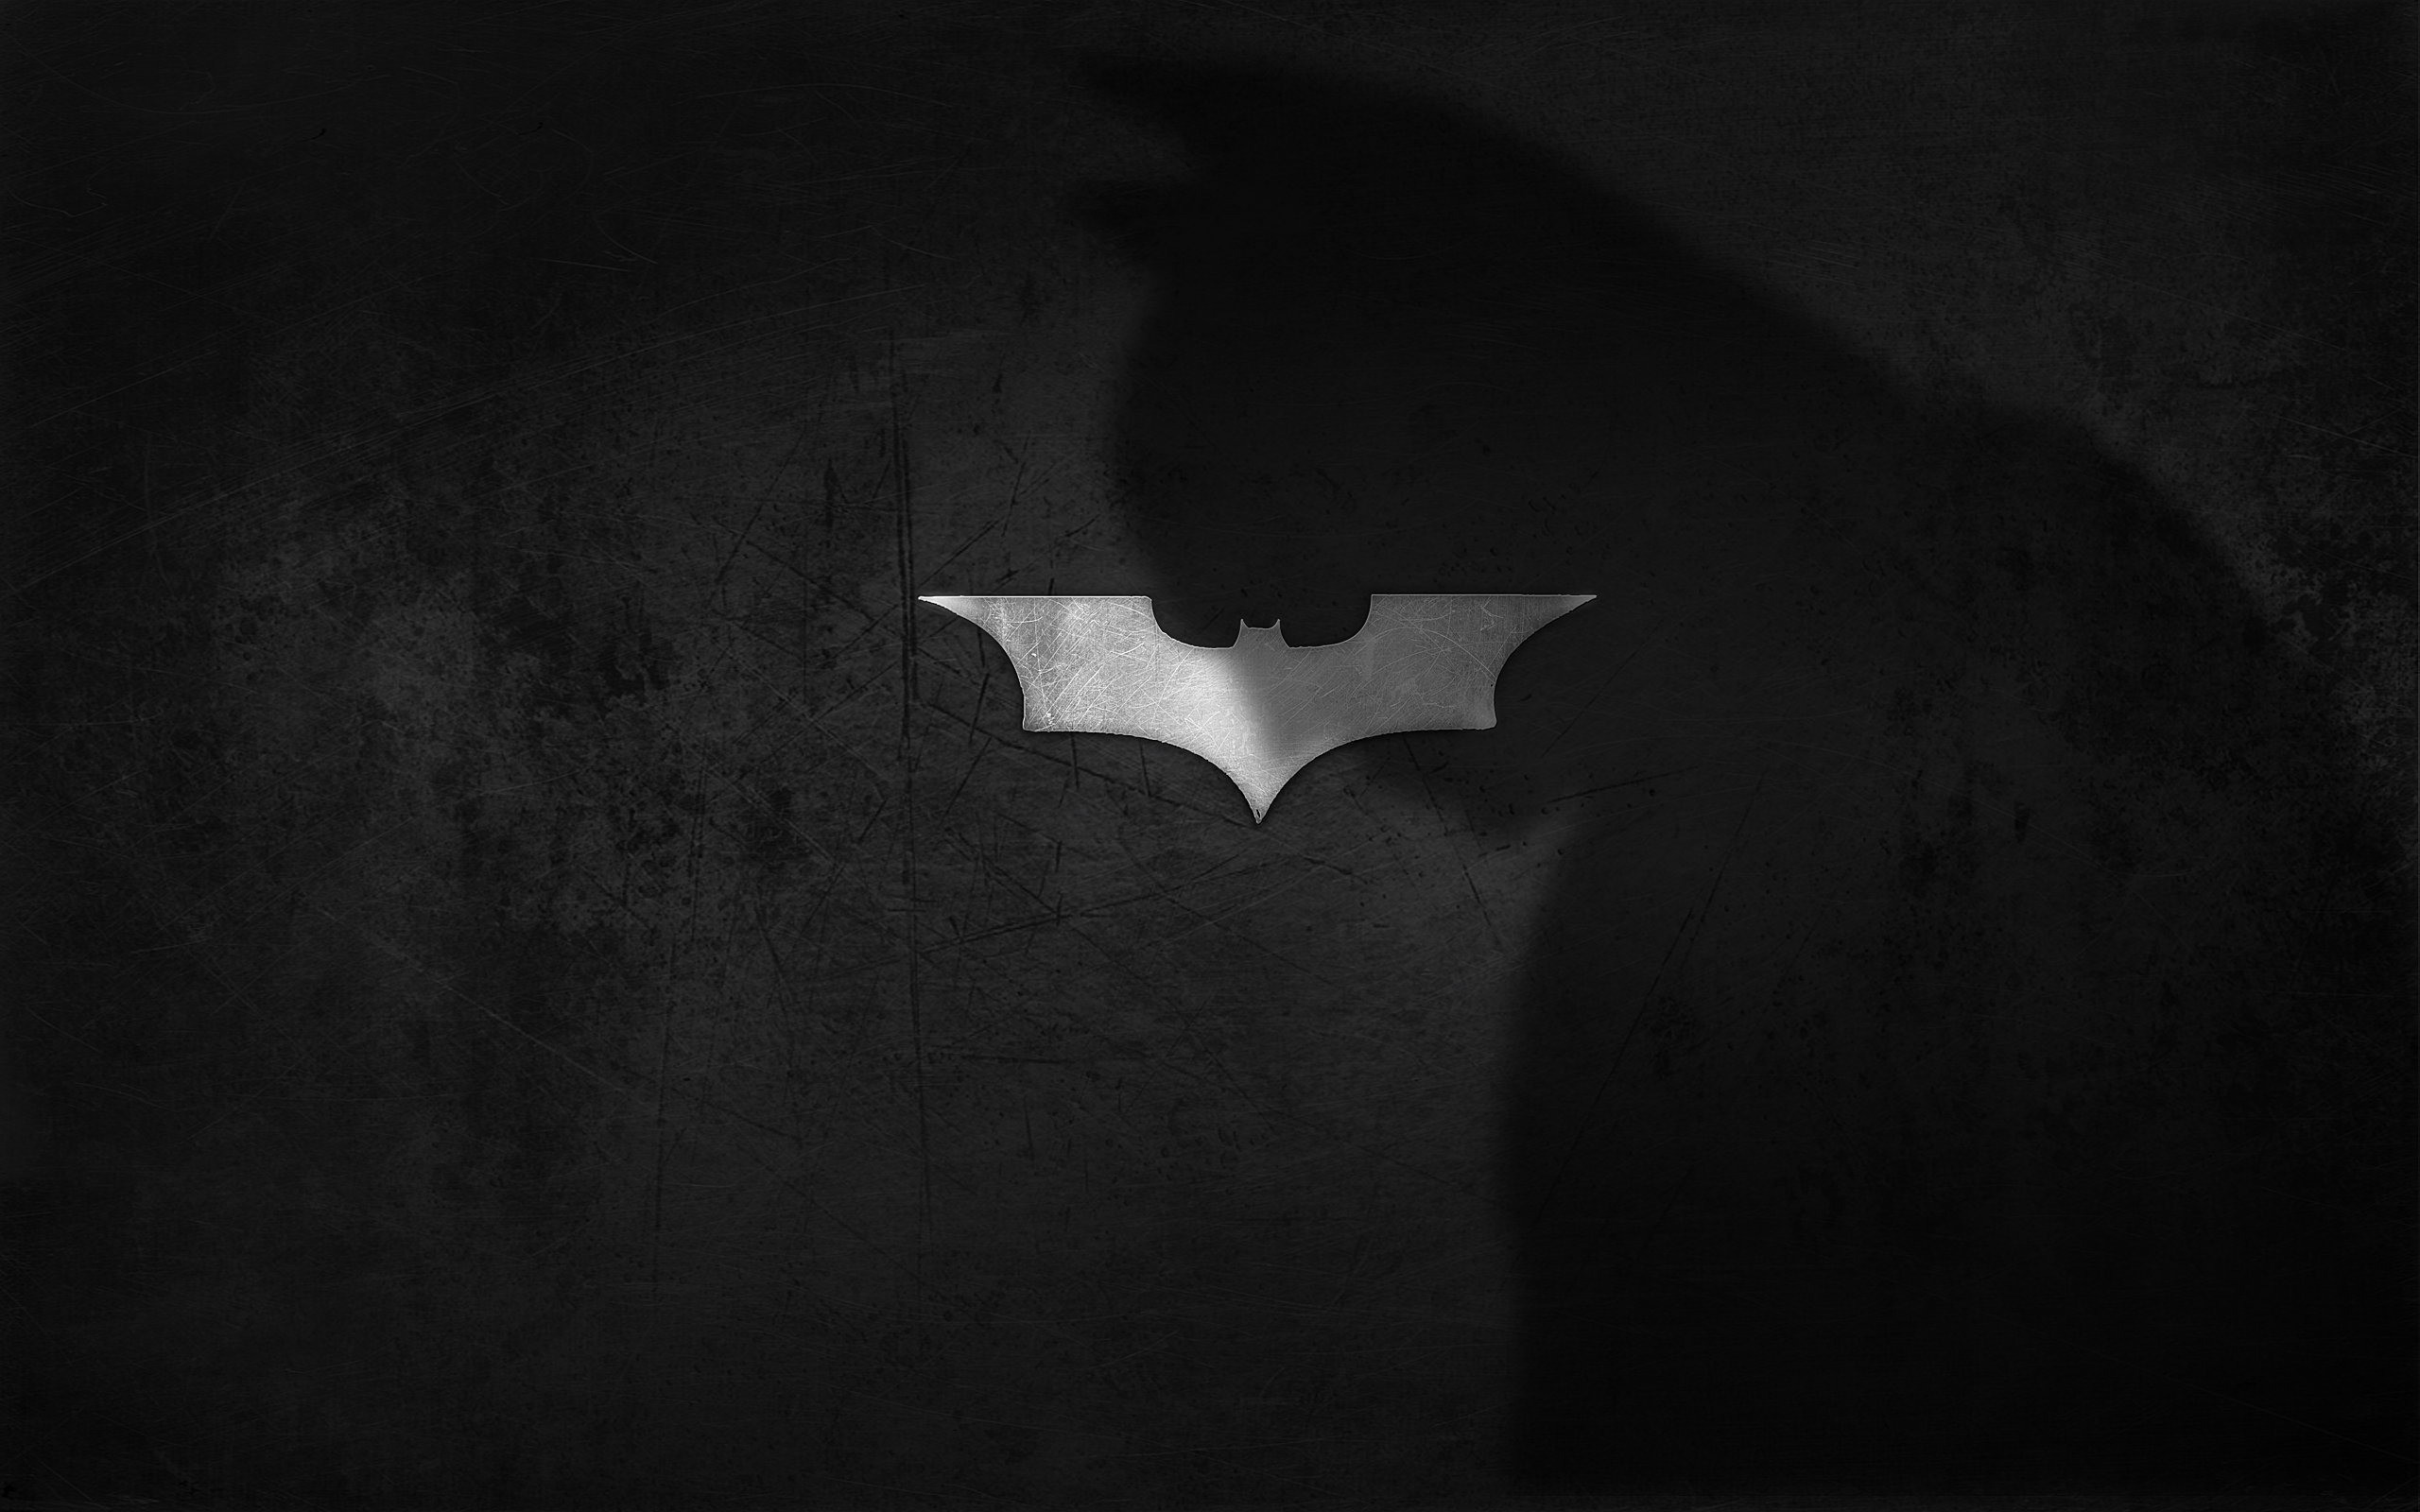 2560x1600 Awesome Batman Wallpaper.